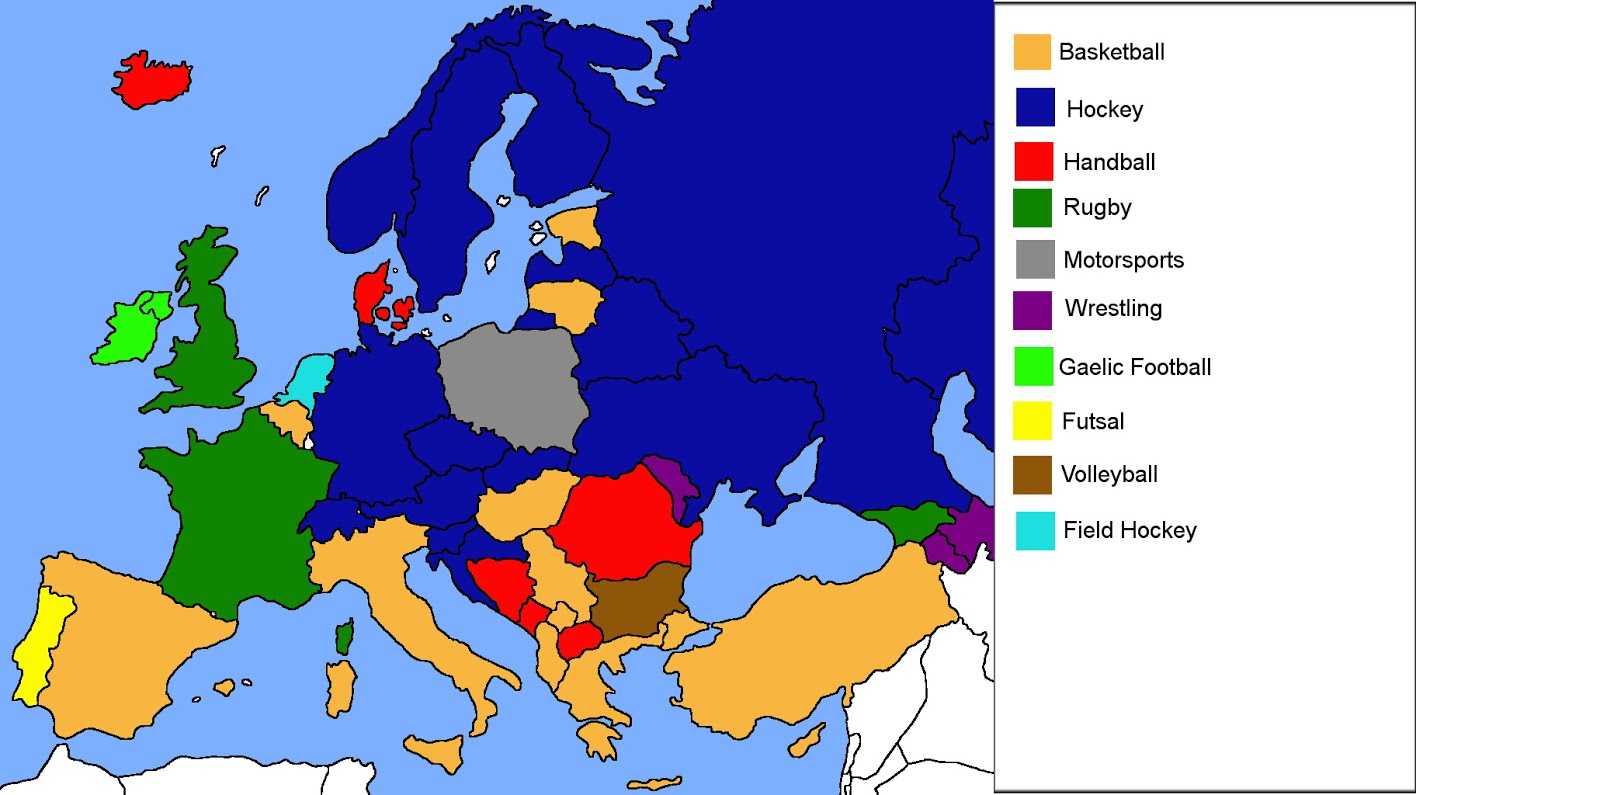 Which is the second most popular sport in the Europe after soccer?